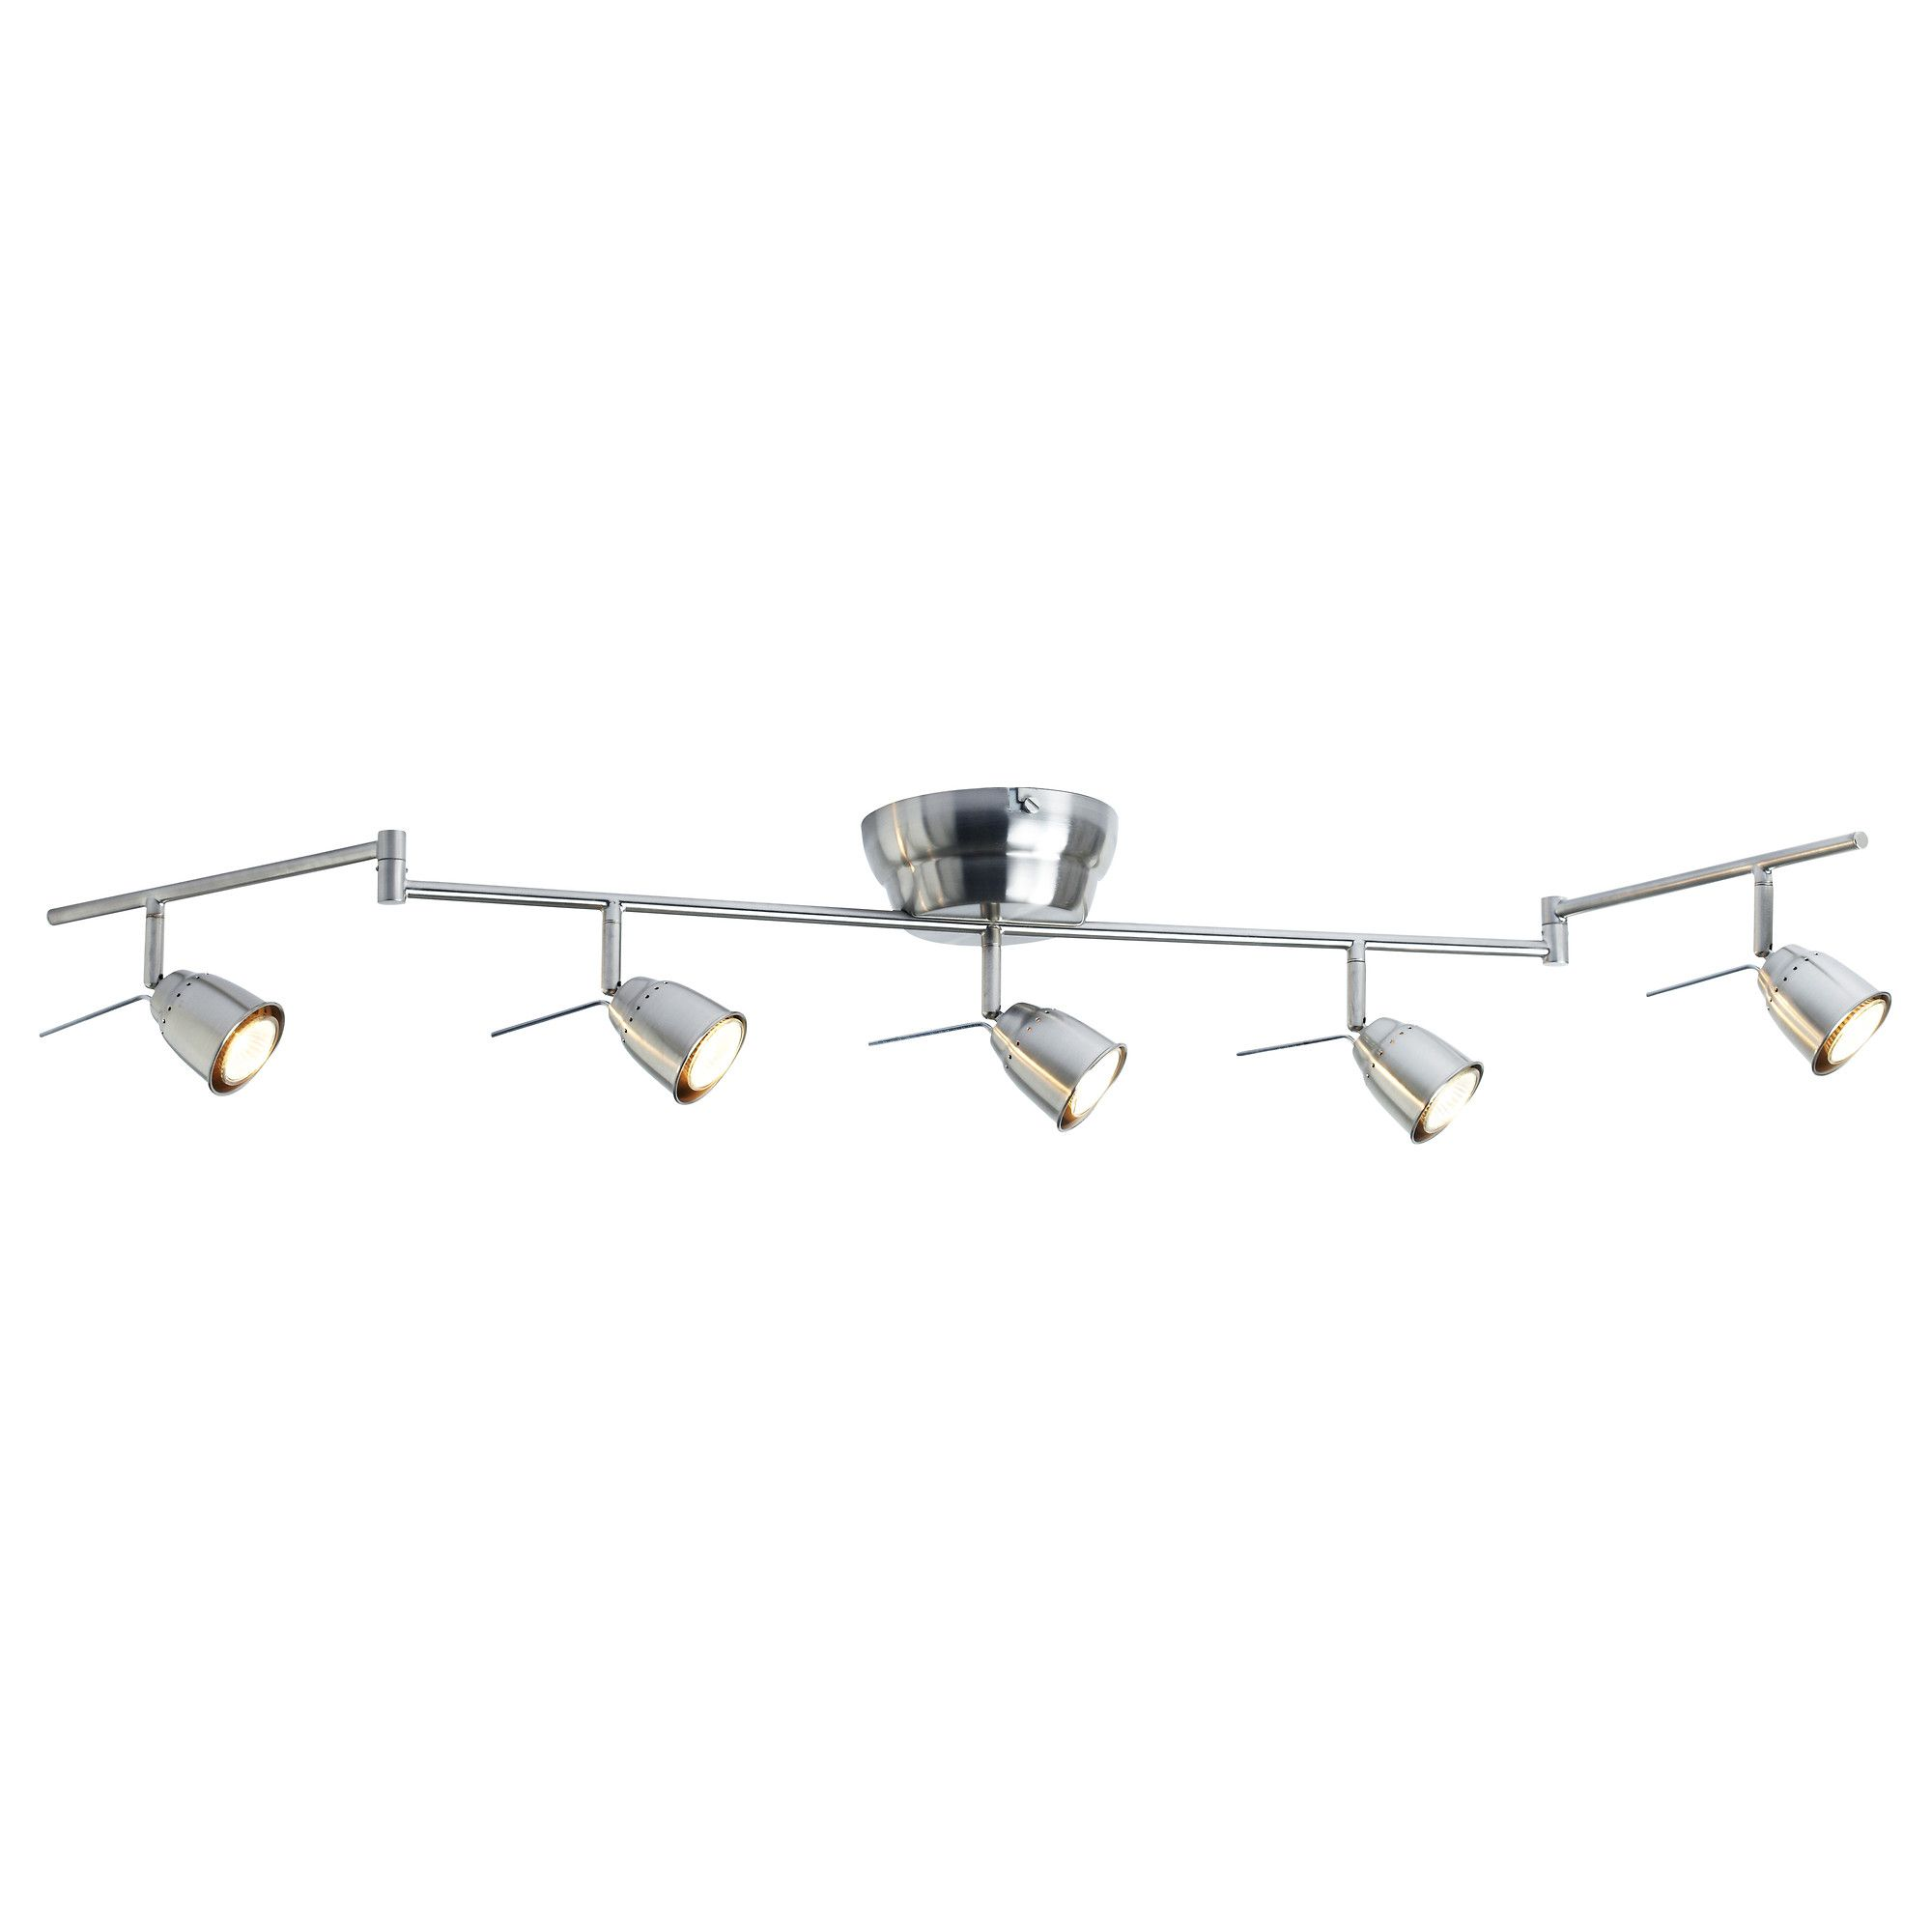 Barometer Ceiling Track 5 Spots Nickel Plated Ikea Ceiling